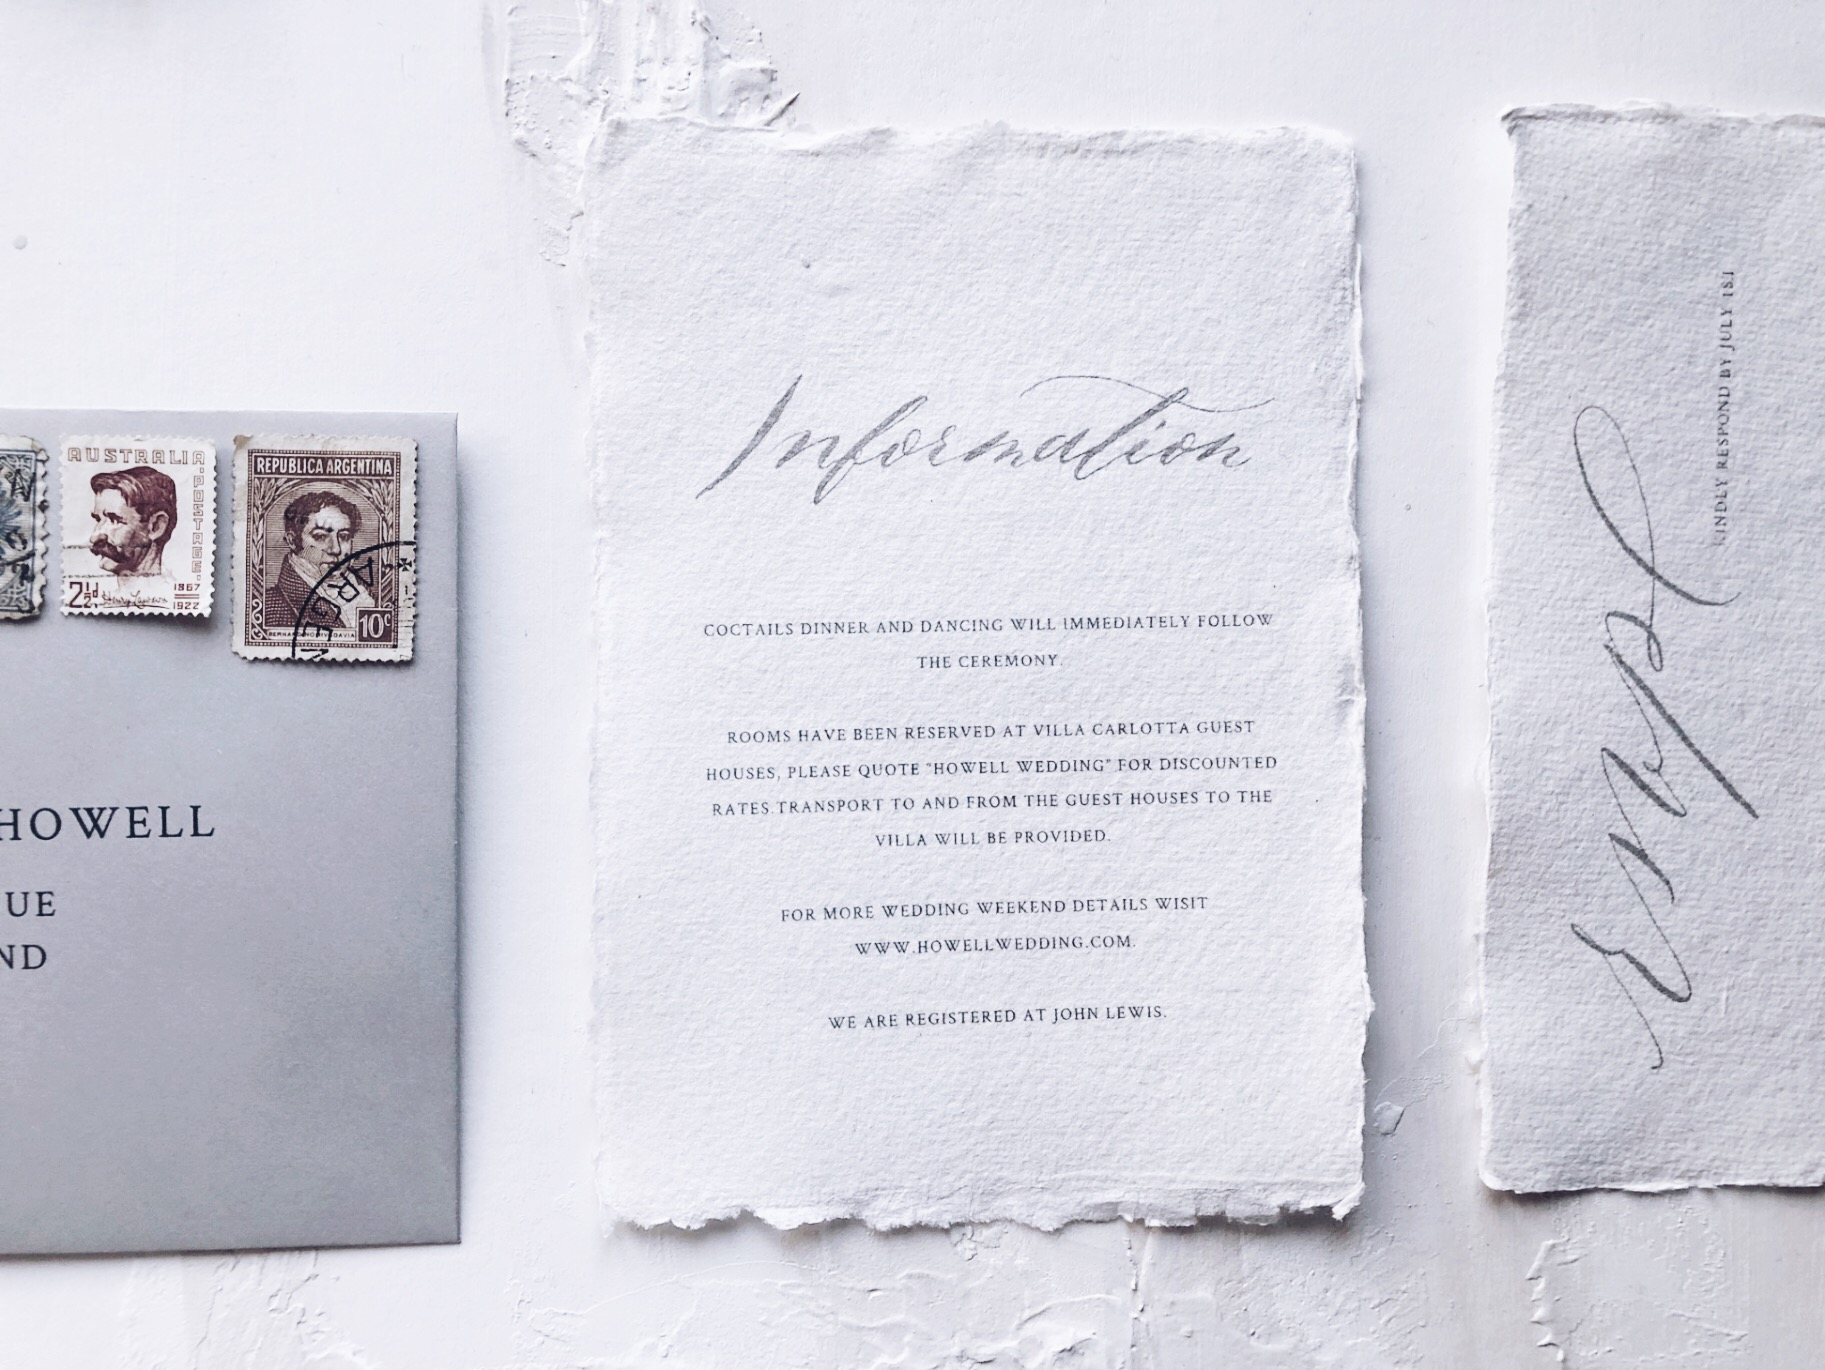 Ihandmade_paper_wedding_invitations.JPG